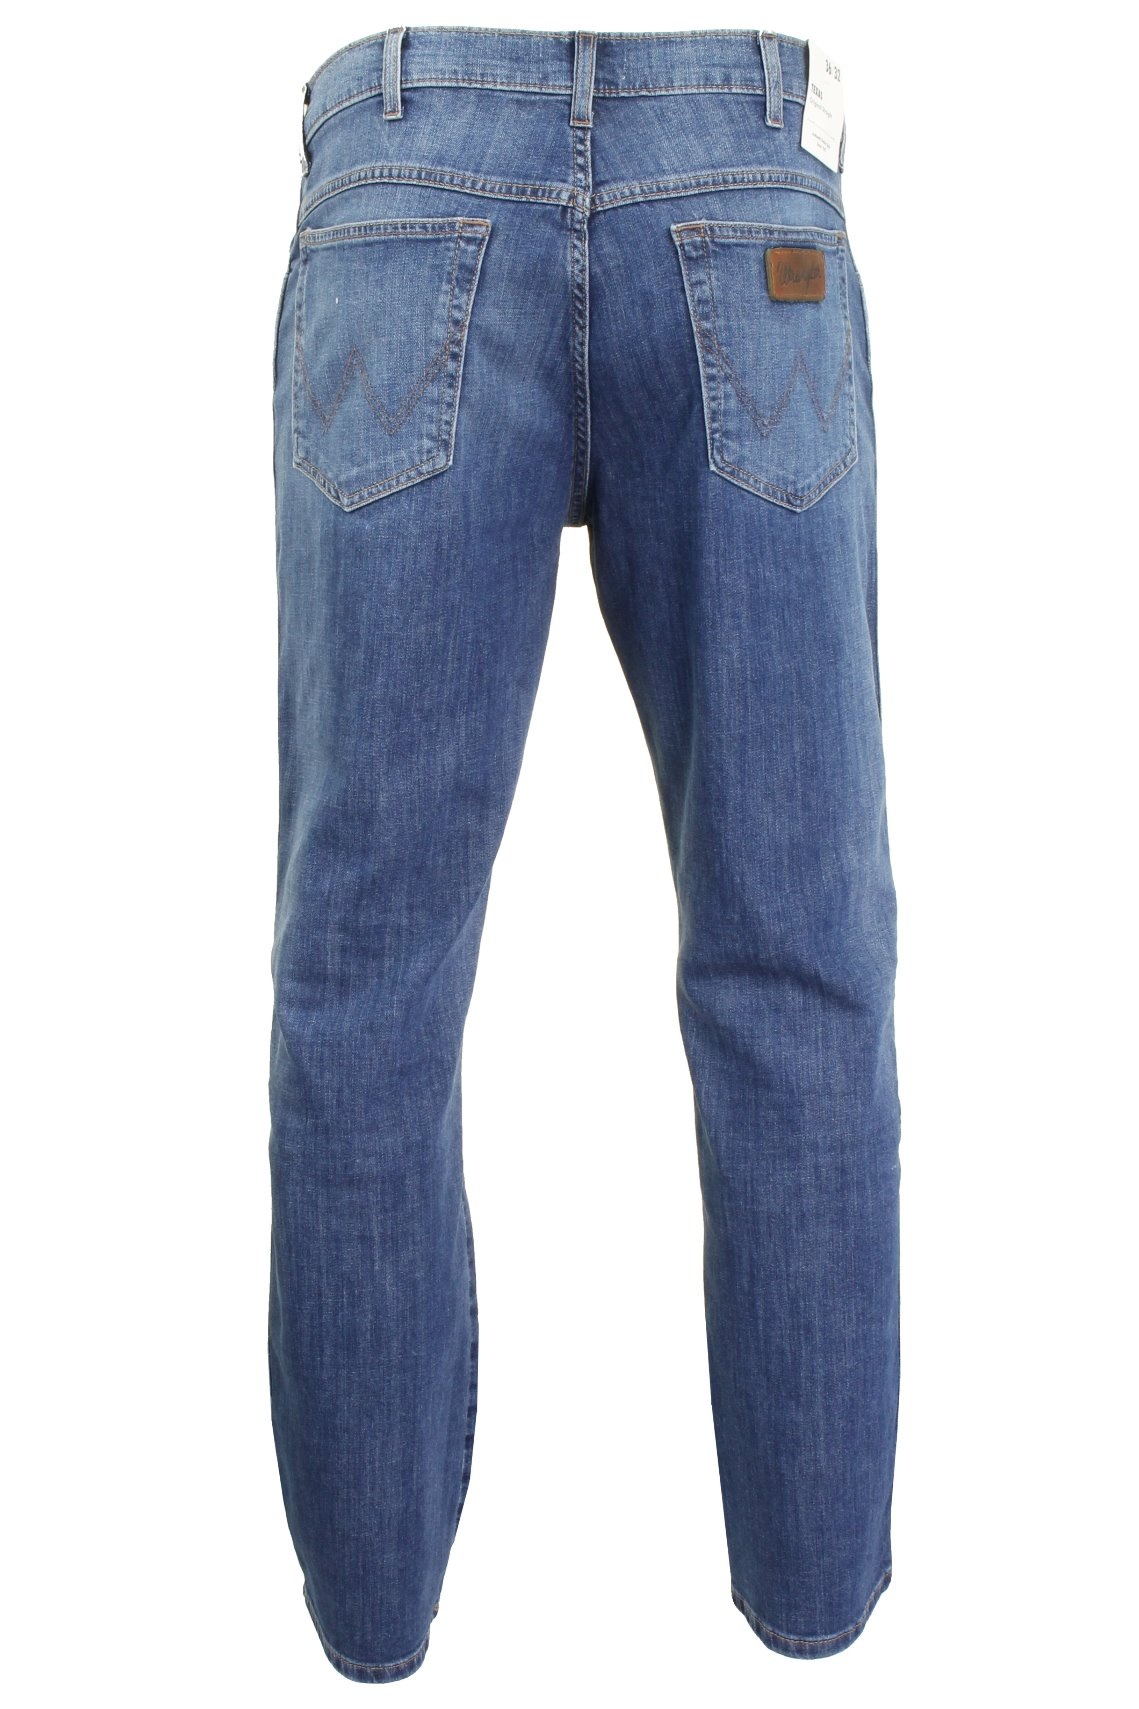 Mens-Wrangler-039-Texas-039-Jeans-Denim-Stretch-Original-Straight-Fit thumbnail 8